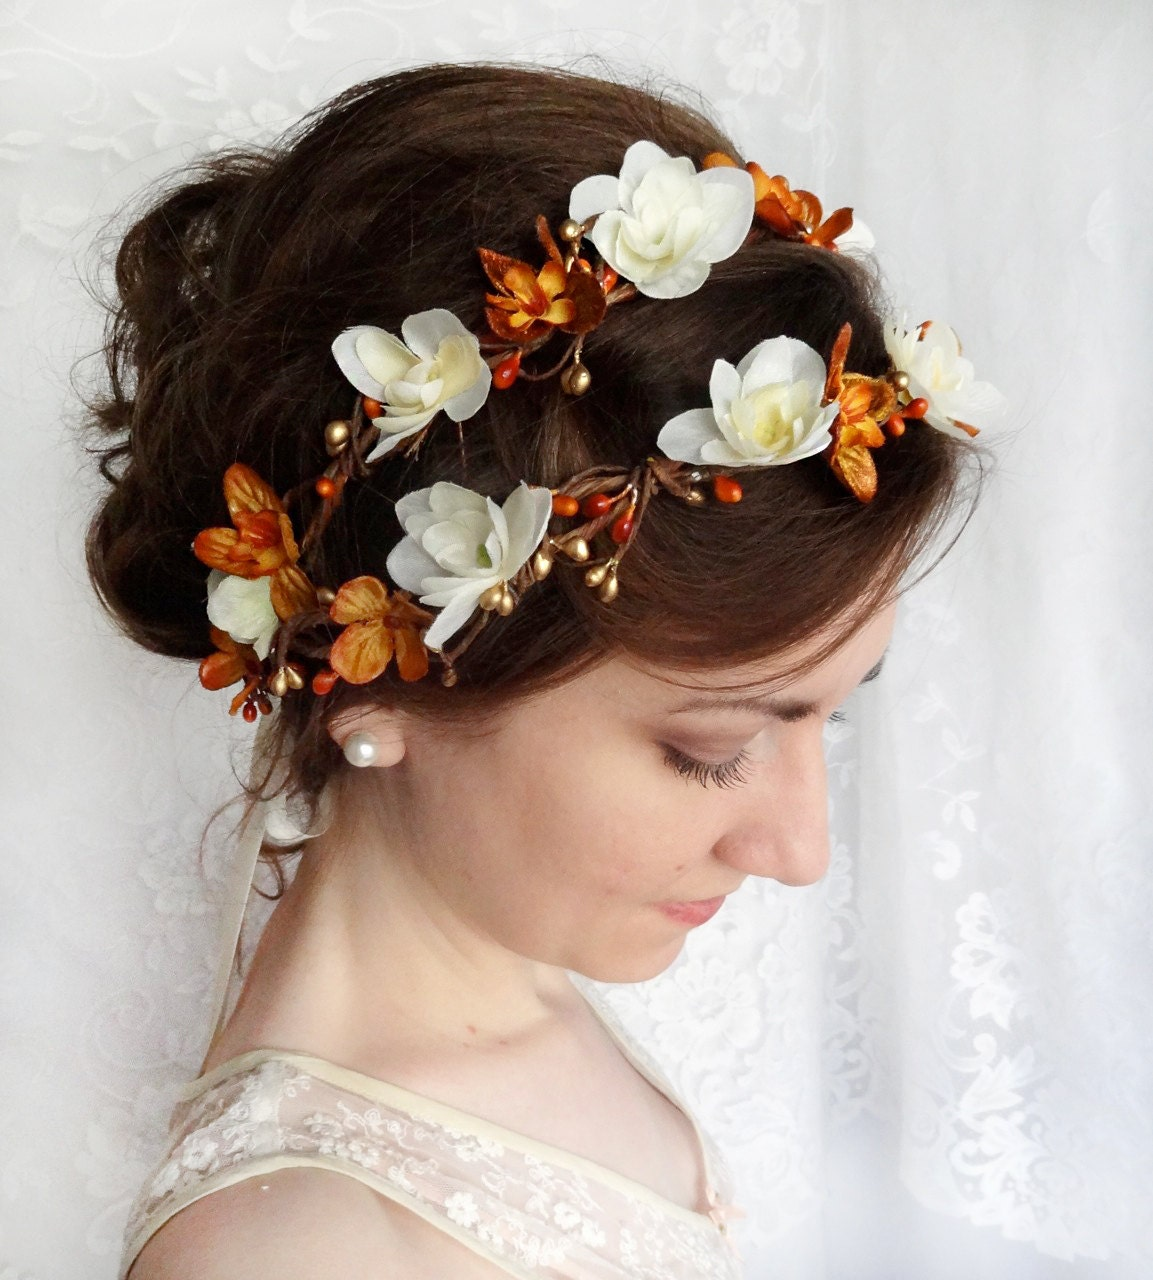 Wedding Hairstyle Crown: Fall Wedding Flower Crown Autumn Bridal Hair By Thehoneycomb